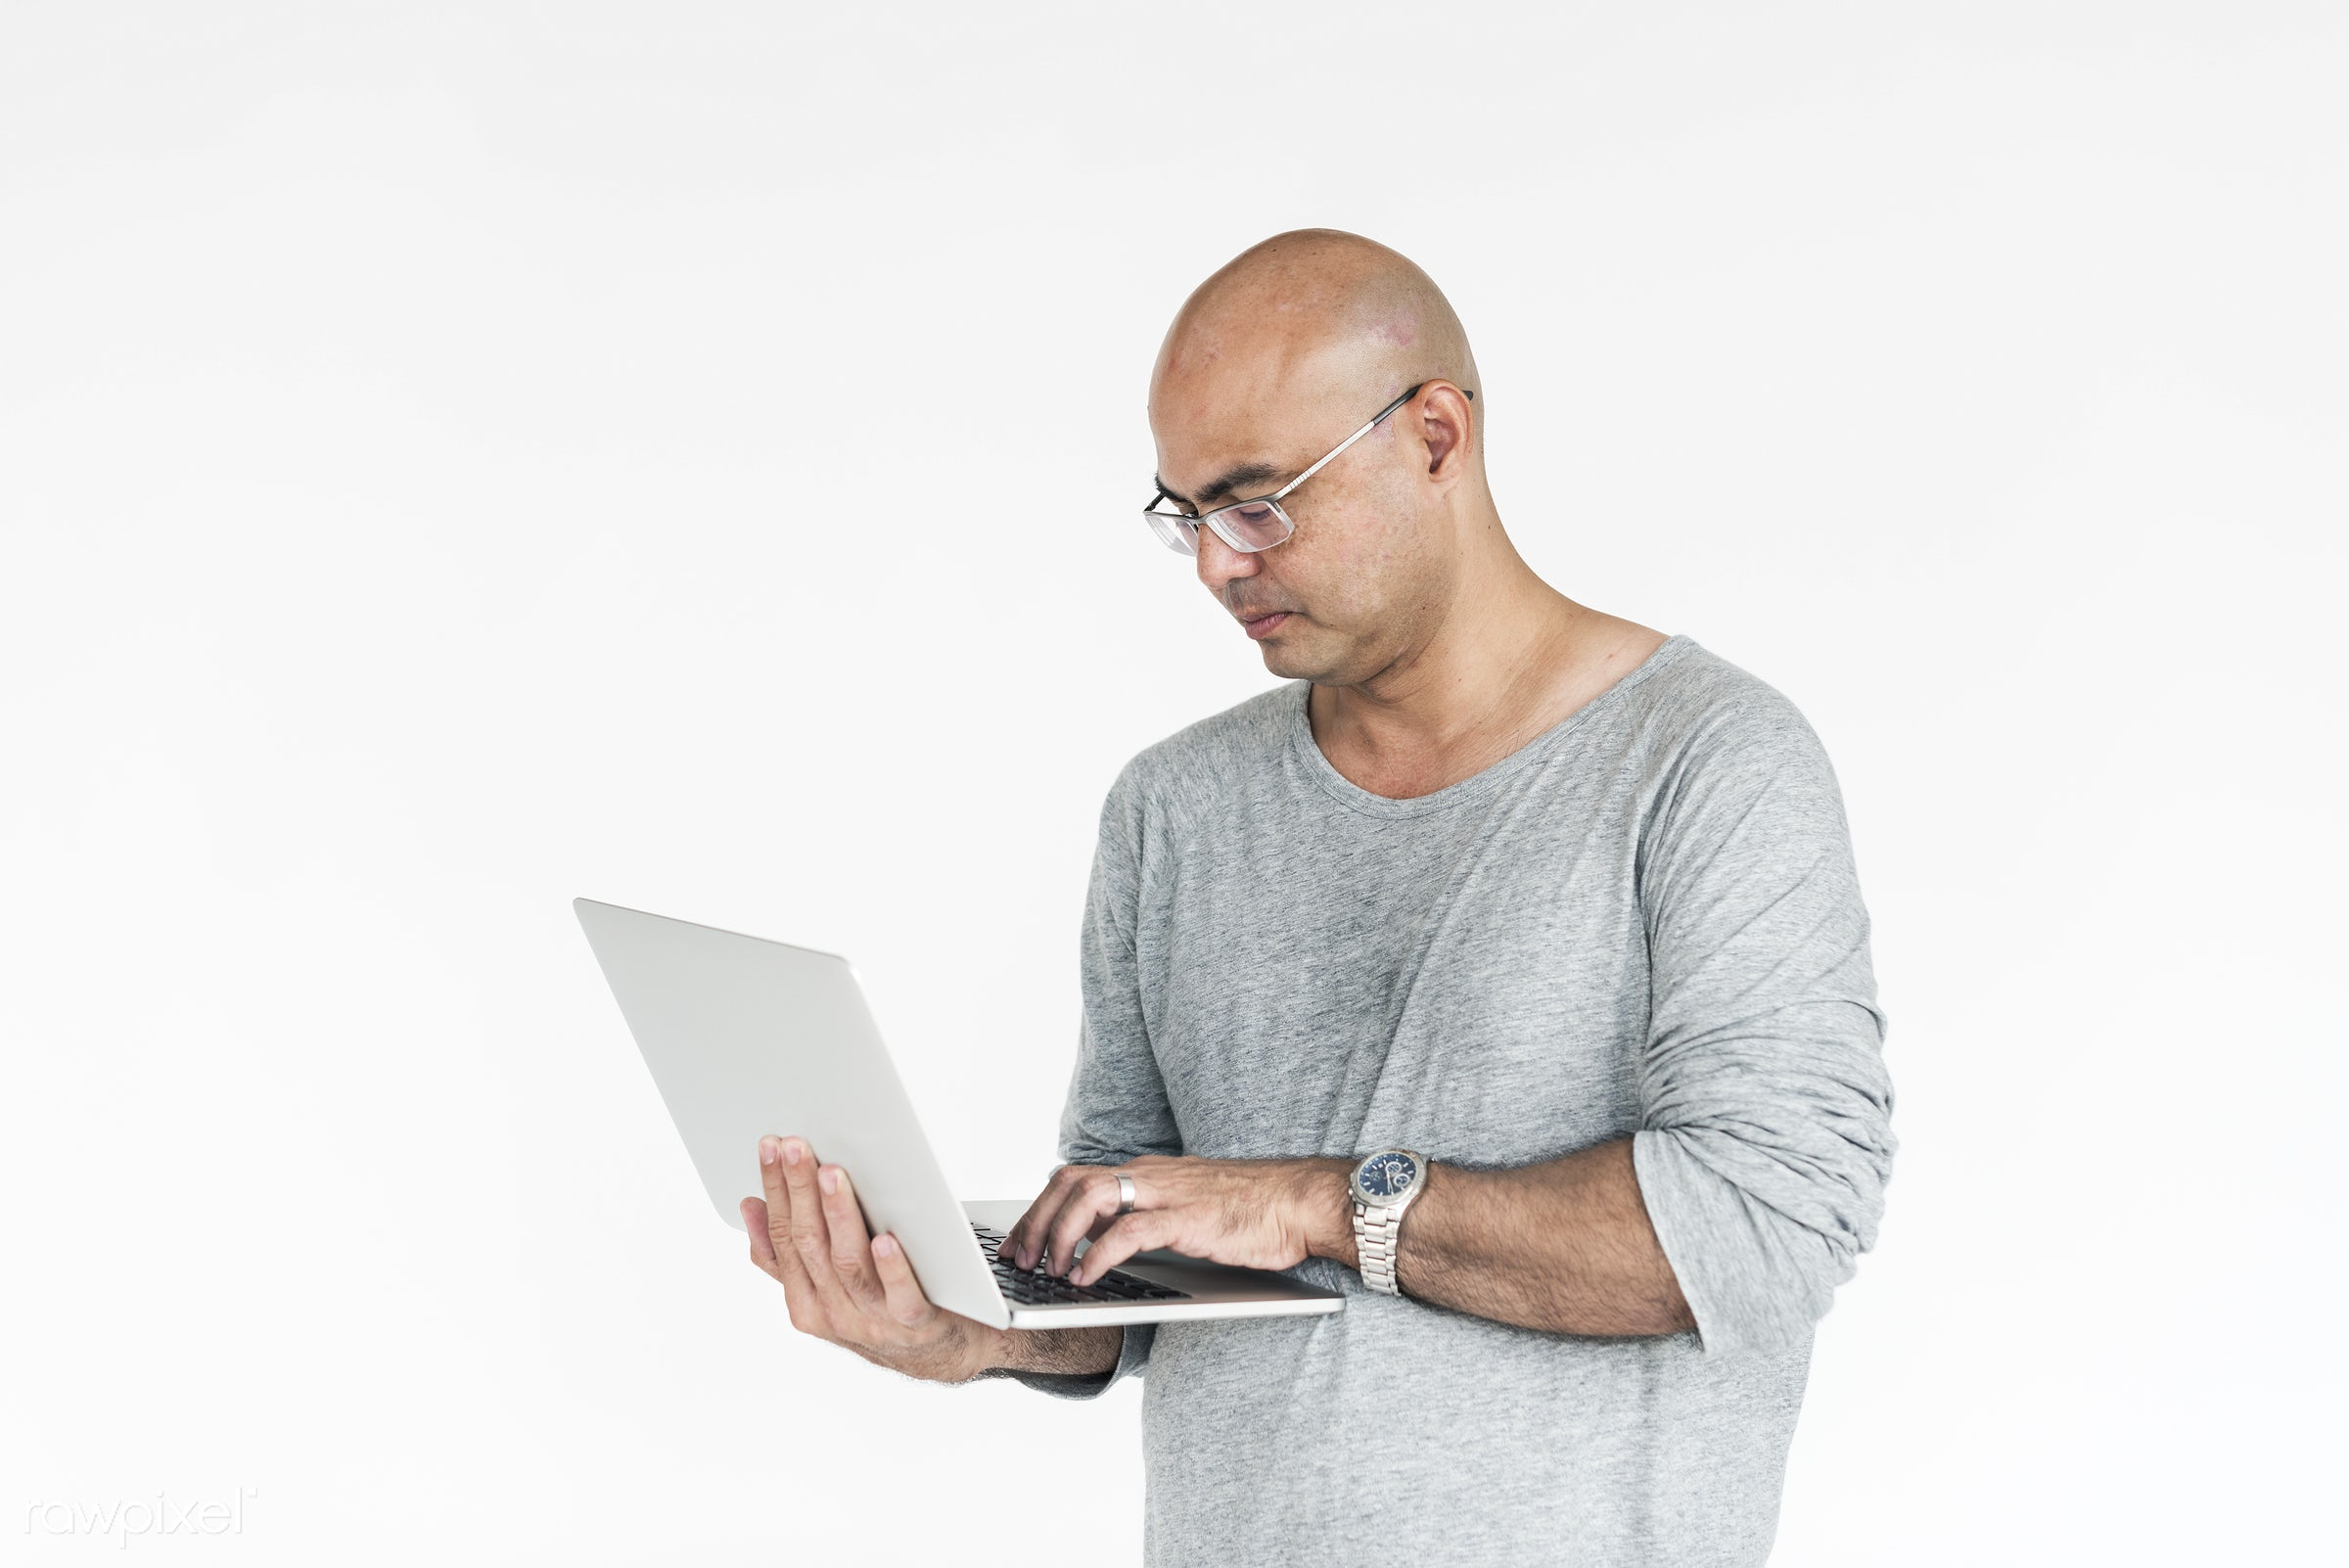 studio, expression, person, technology, isolated on white, people, online, caucasian, laptop, working, man, networking,...